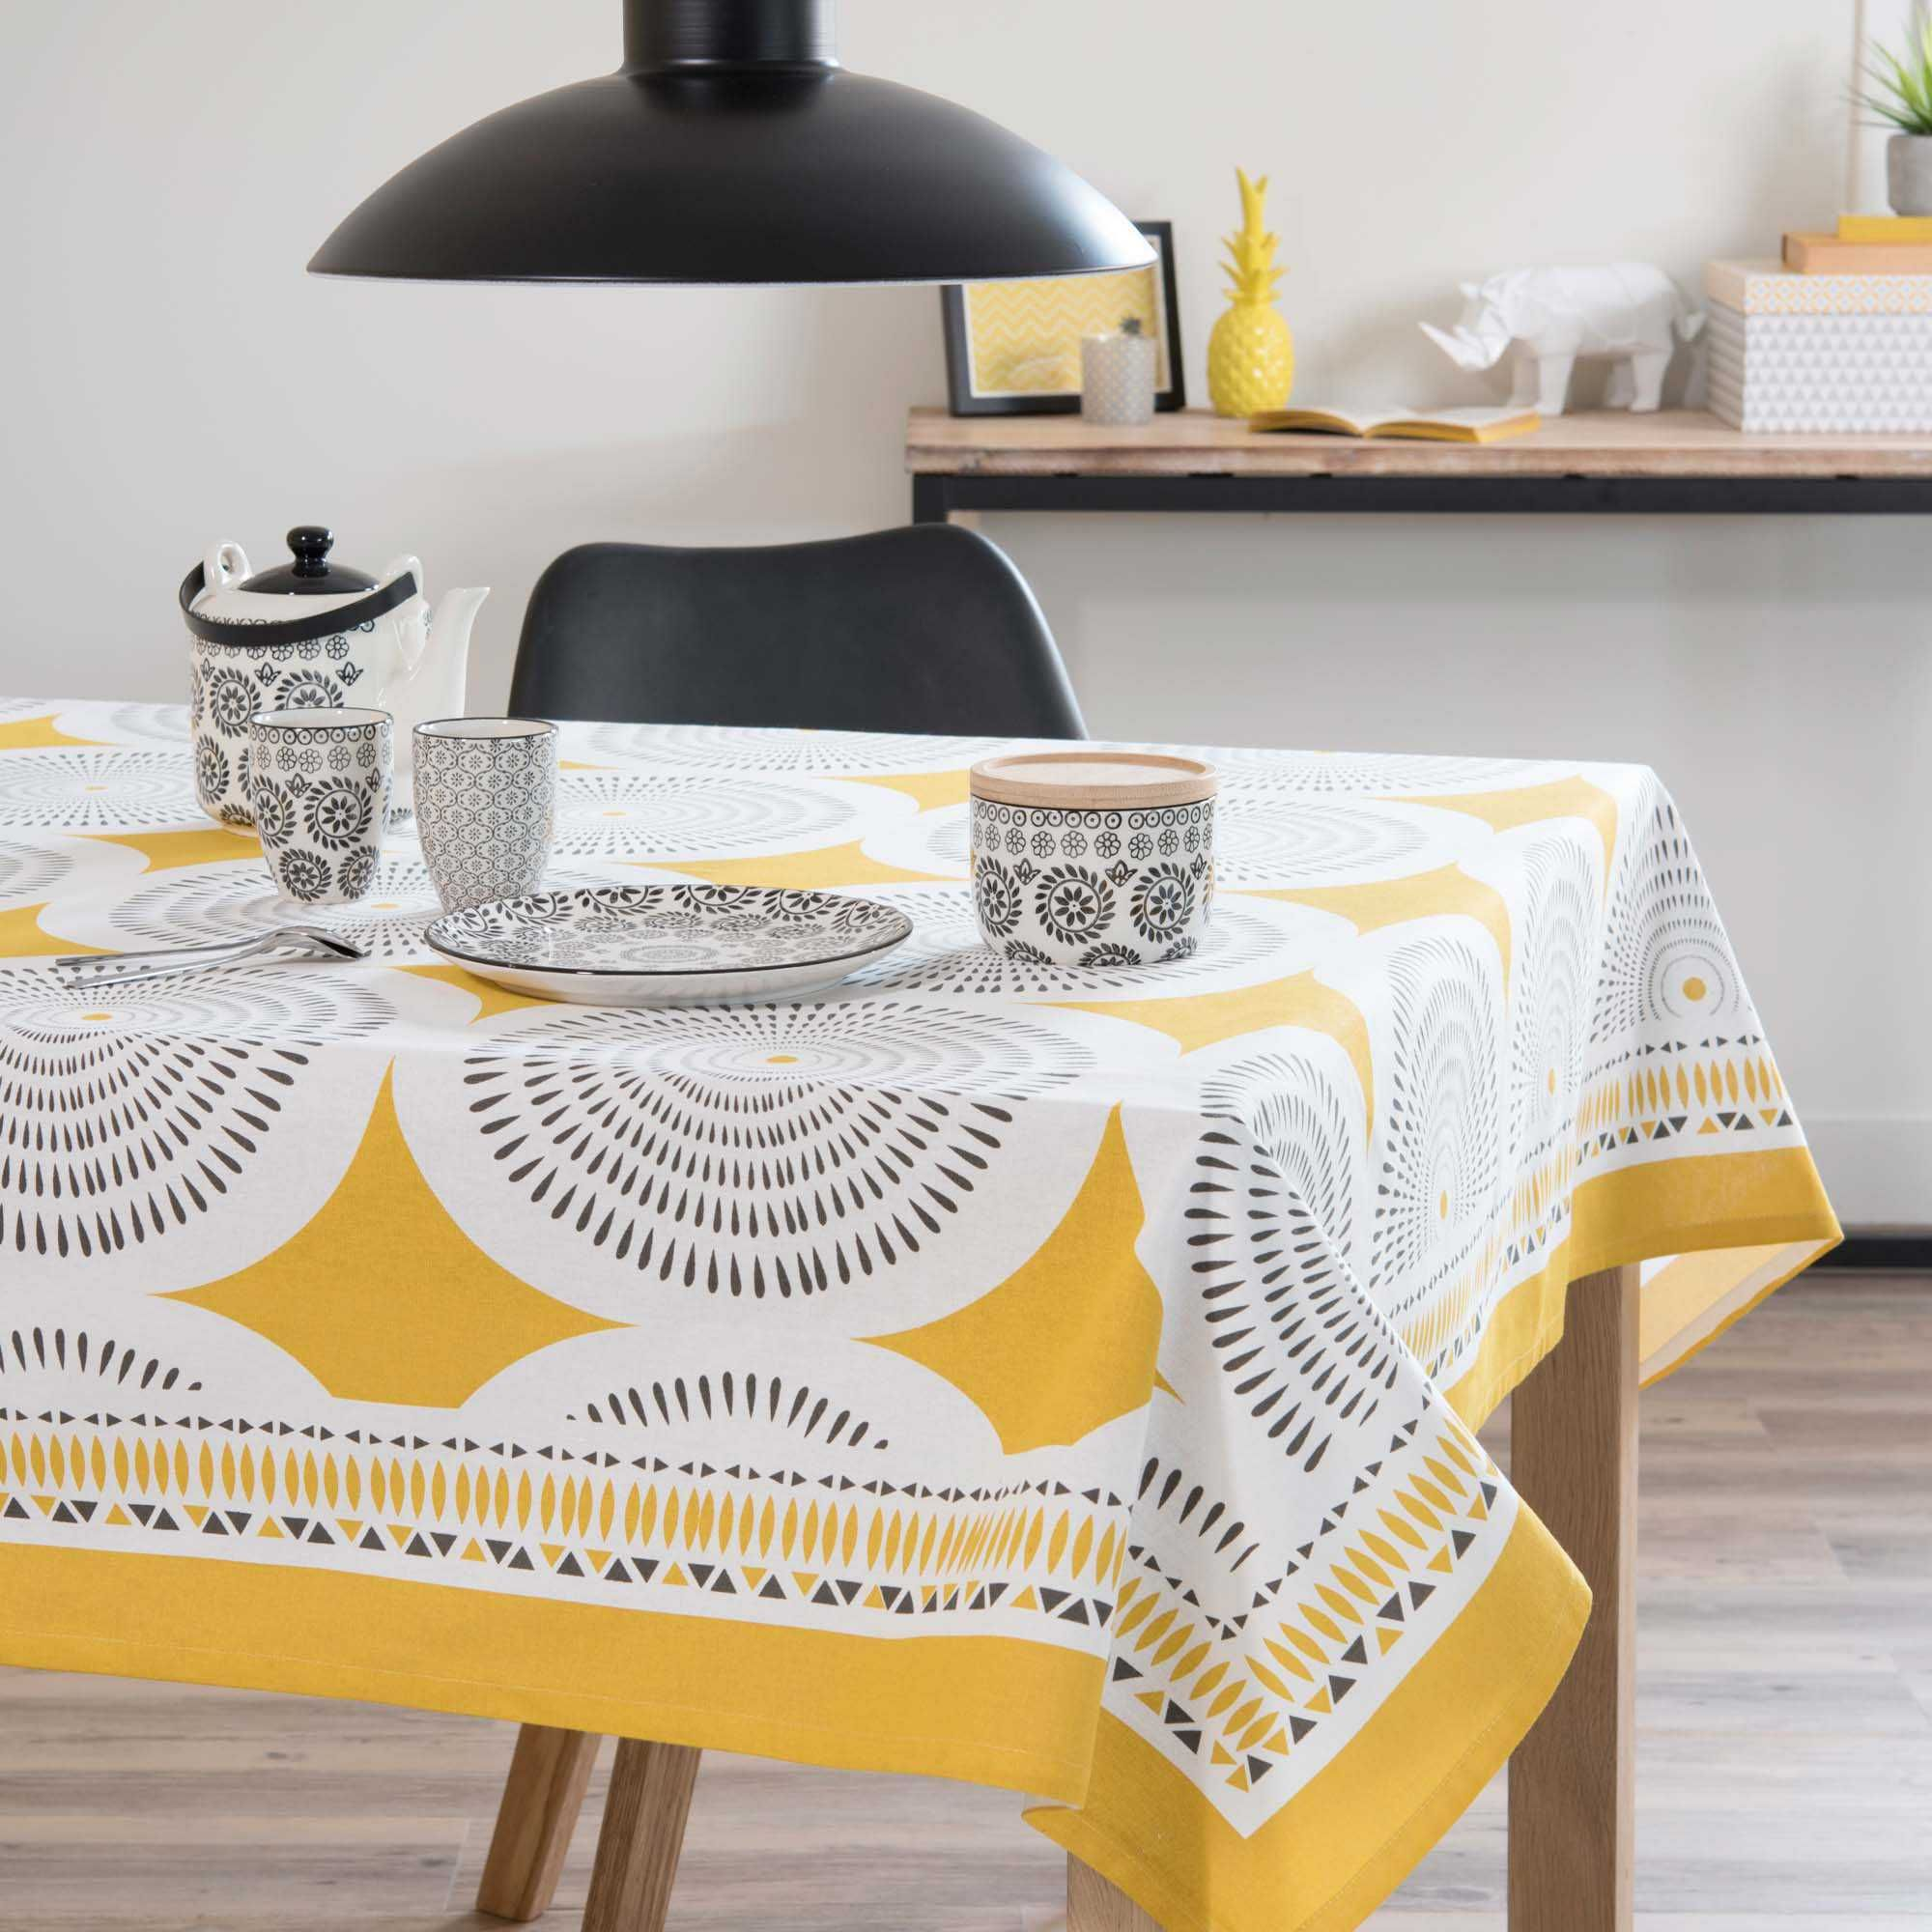 nappe en coton jaune gris 150 x 250 cm heliconia maisons du monde yellow pinterest. Black Bedroom Furniture Sets. Home Design Ideas